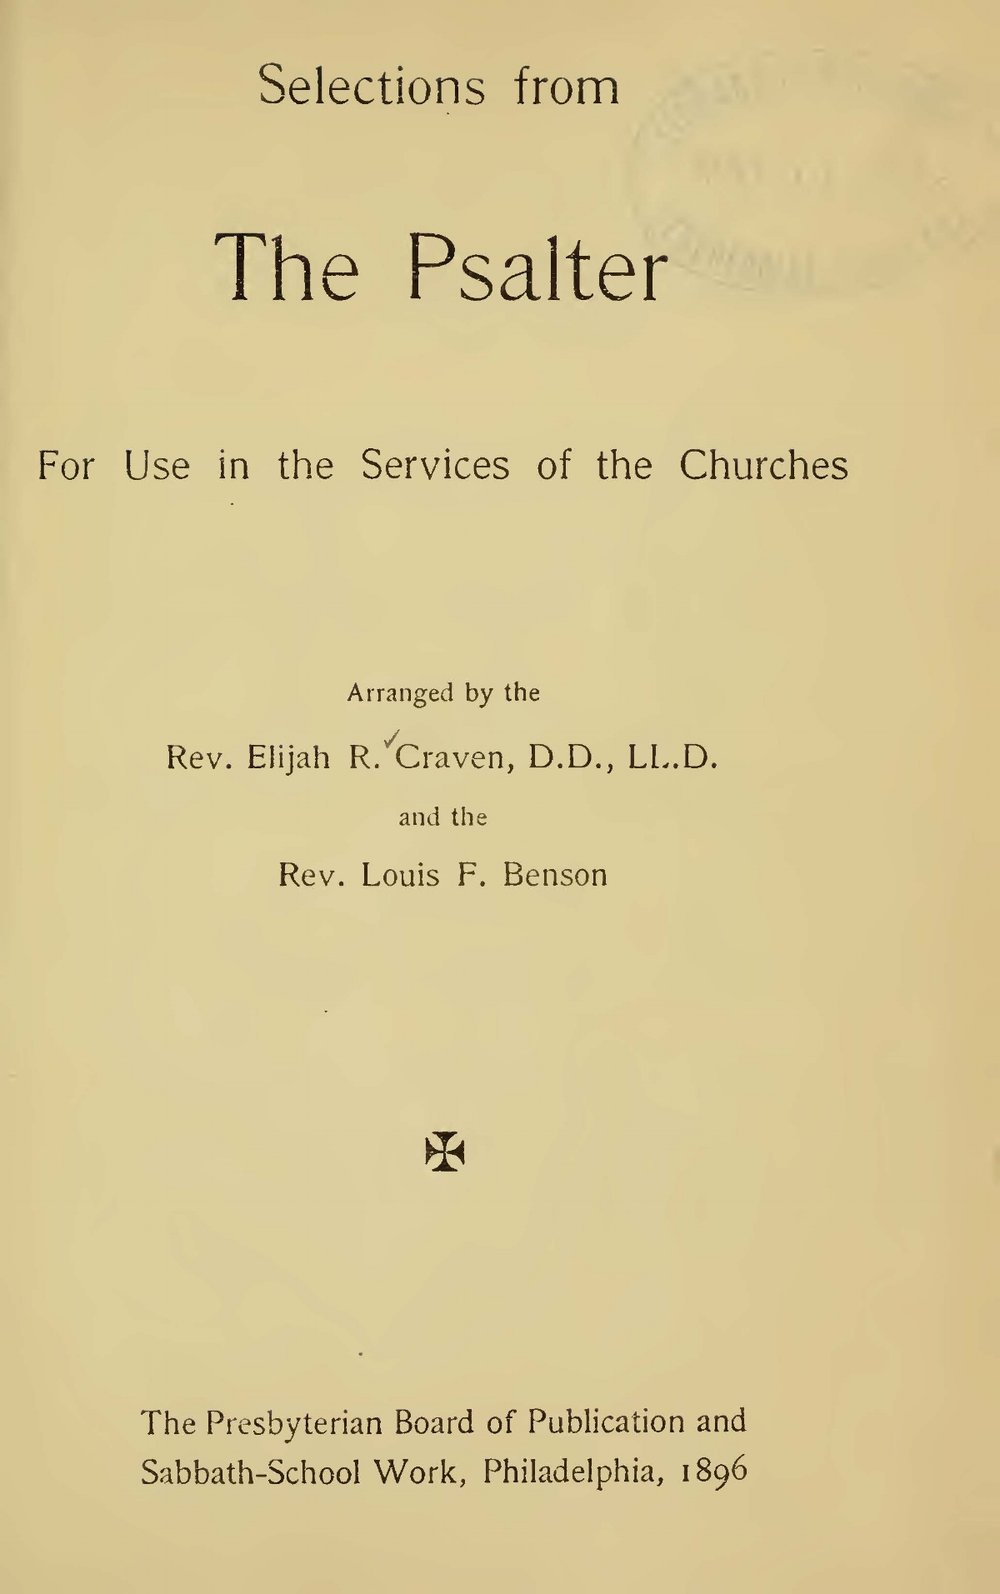 Benson, Louis FitzGerald, Selections From the Psalter for Use in the Service of the Churches Title Page.jpg